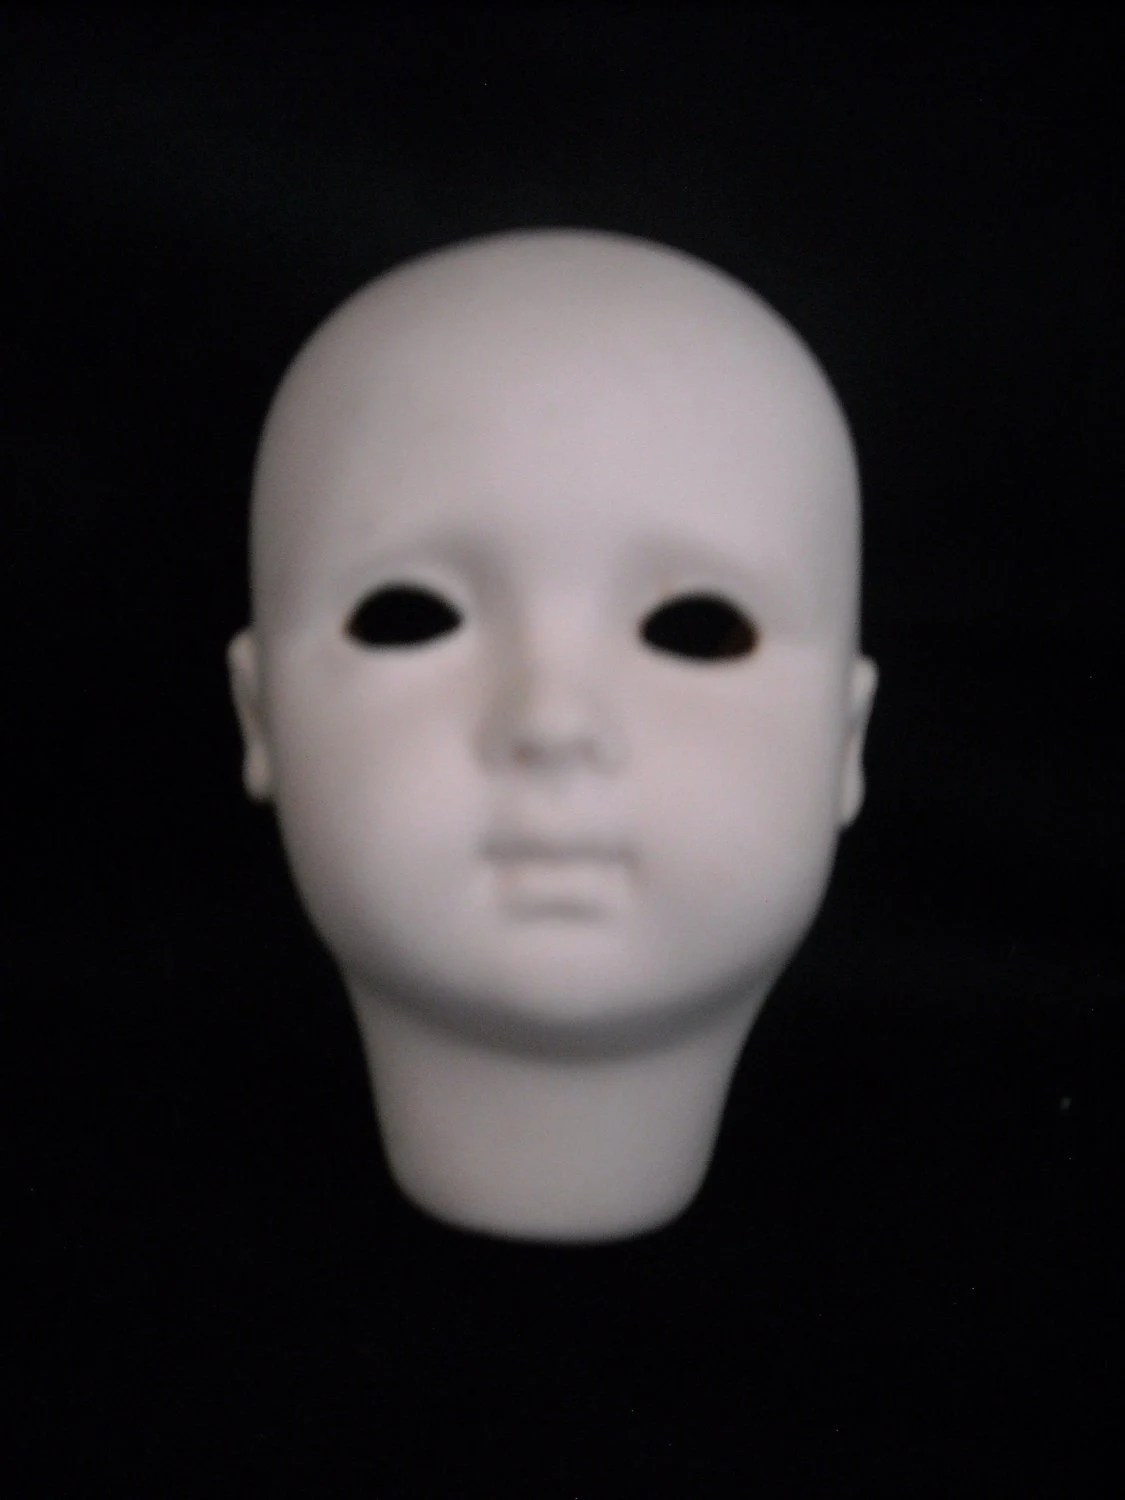 Items similar to Porcelain Doll Head Small on Etsy